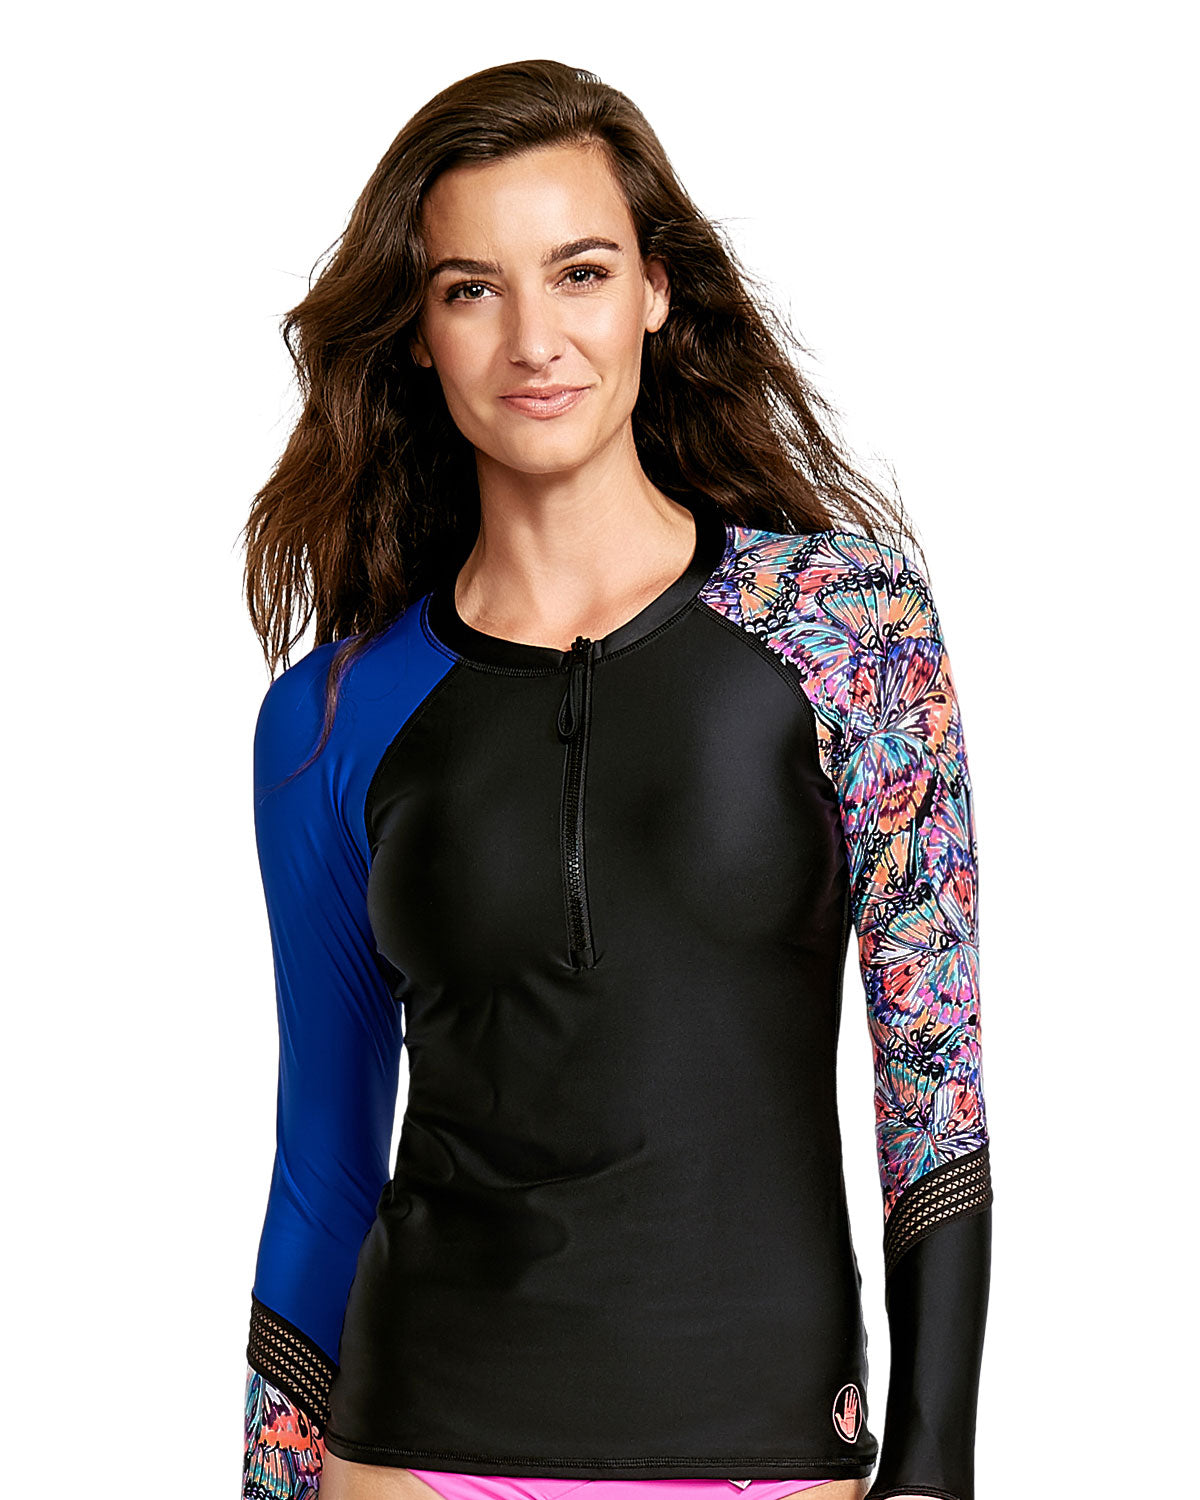 Fly Sleek Rash Guard - Multi